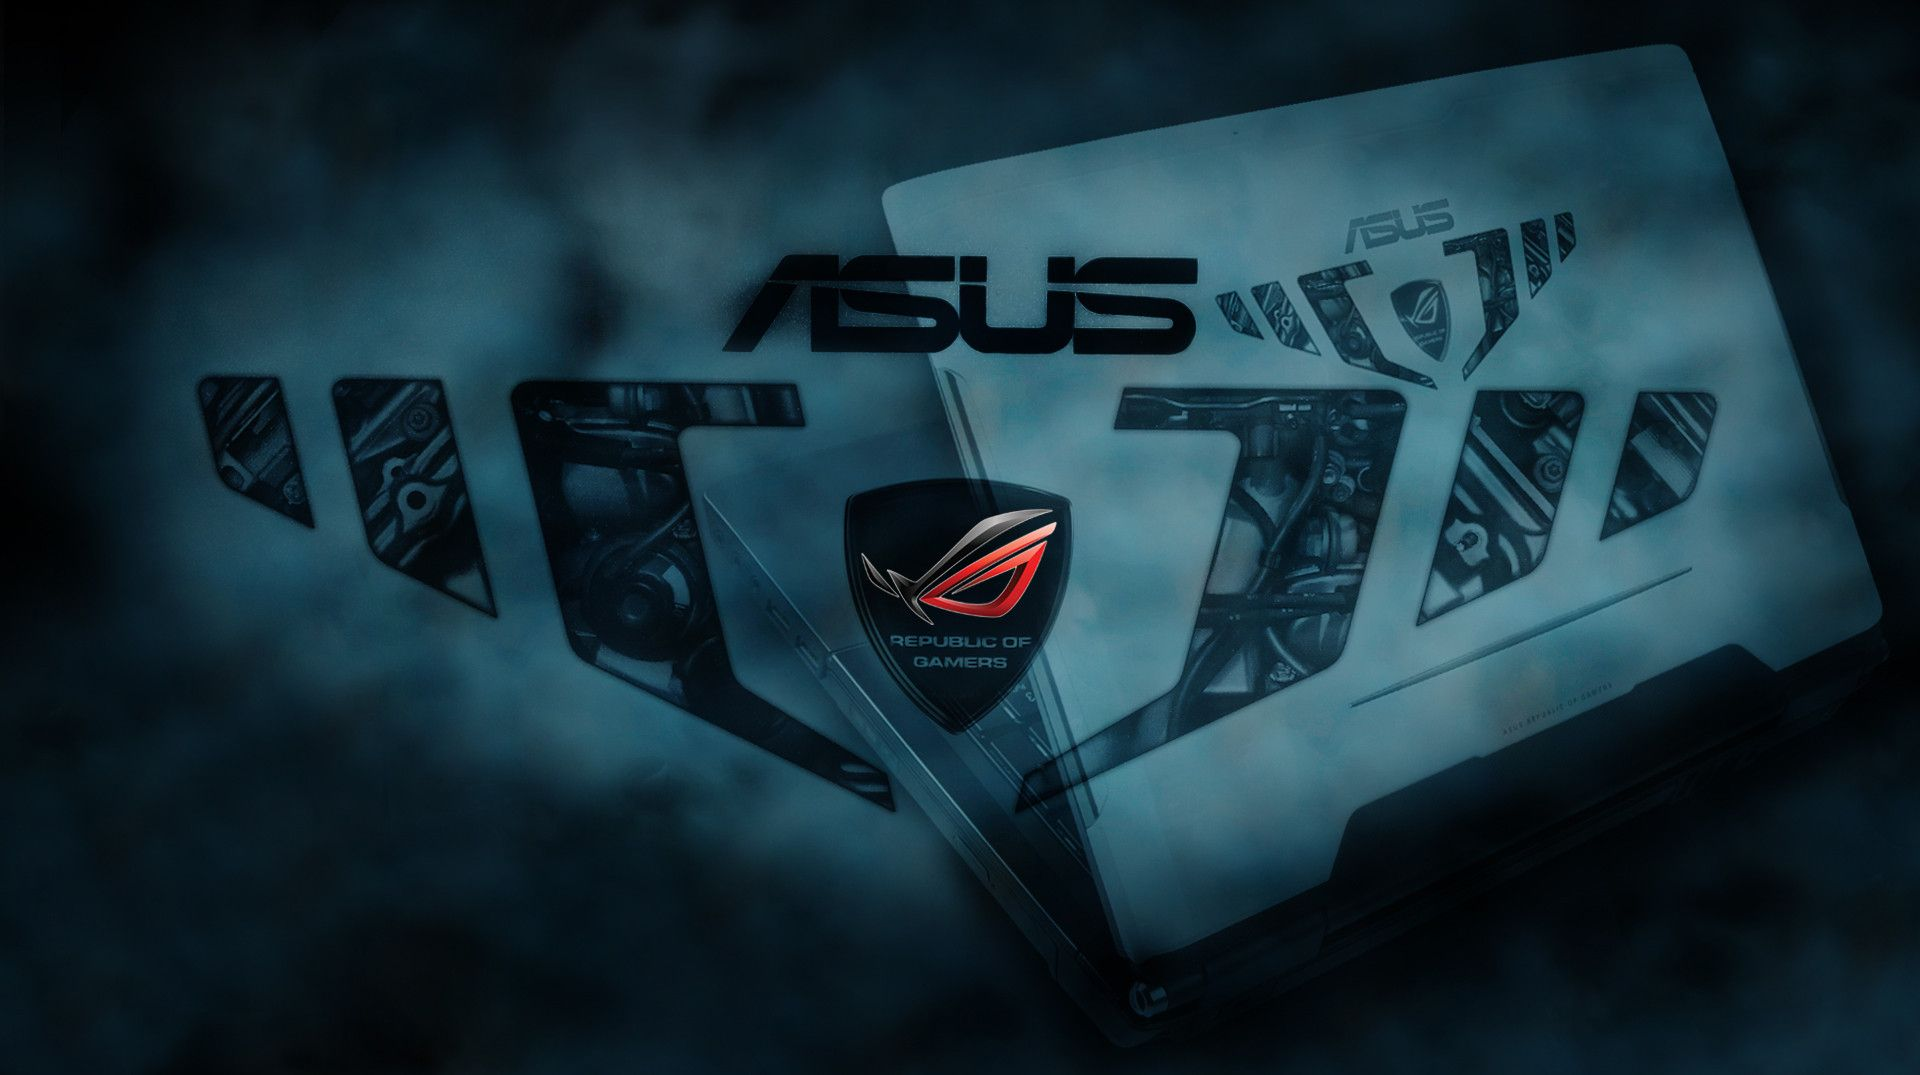 Hd Asus Wallpaper 1920x1075